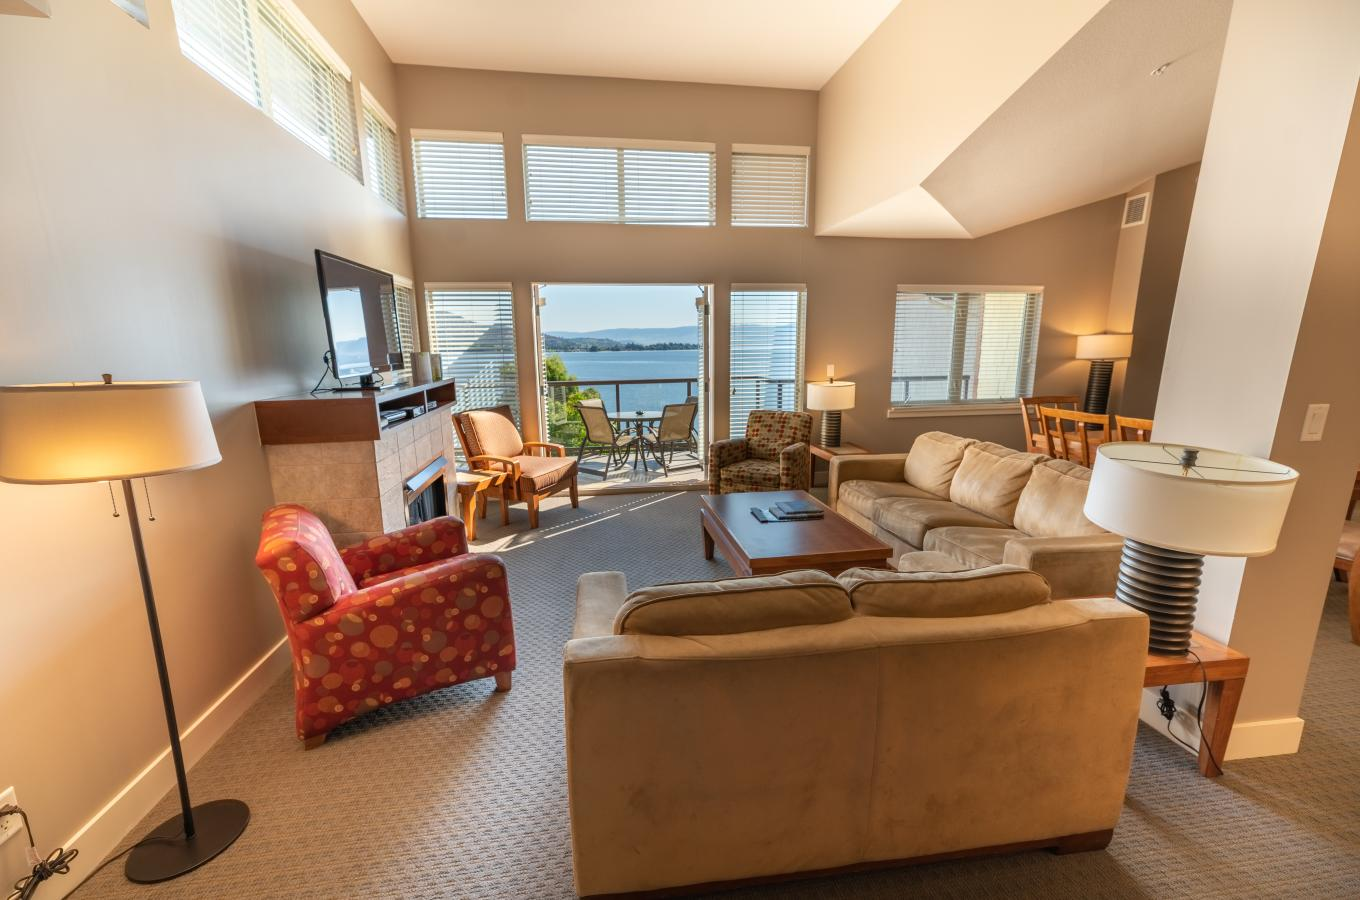 Cove Lakeside Resort Suite